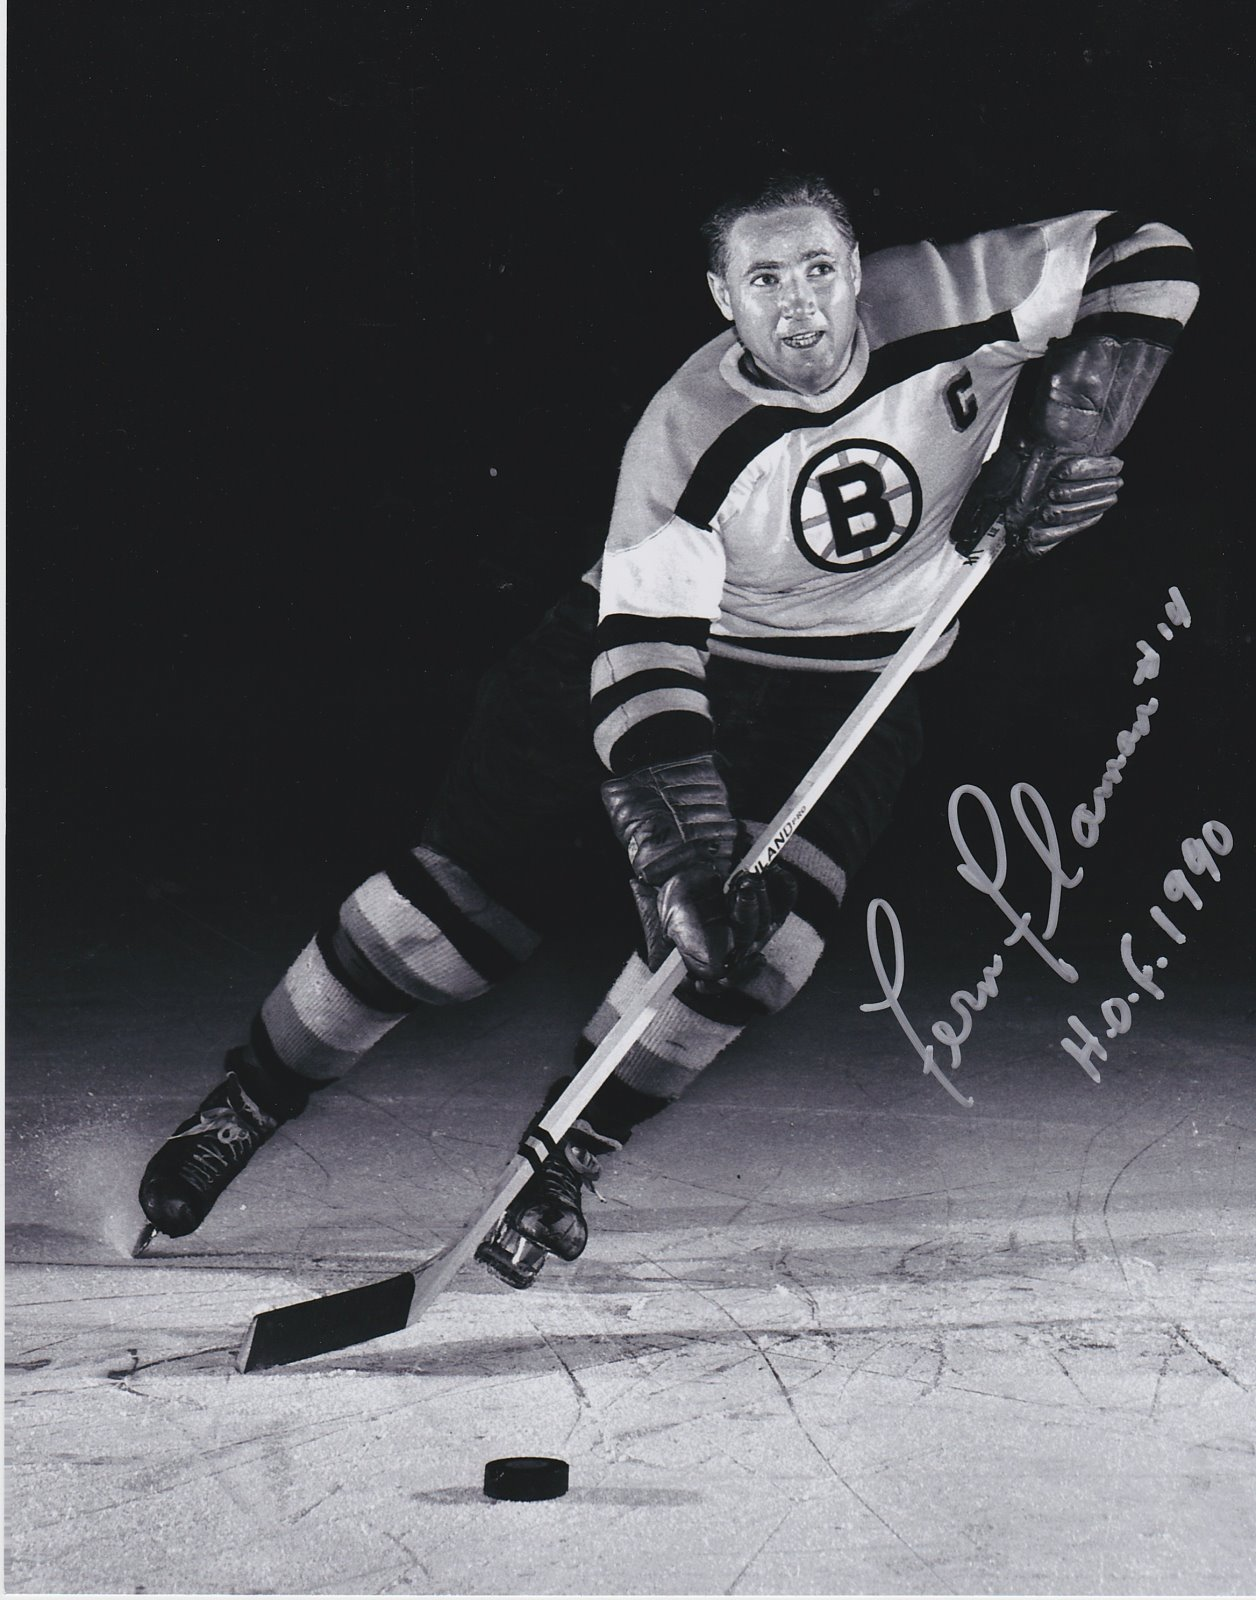 Fernie Flaman Autograph 8x10 Color photo Boston Bruins